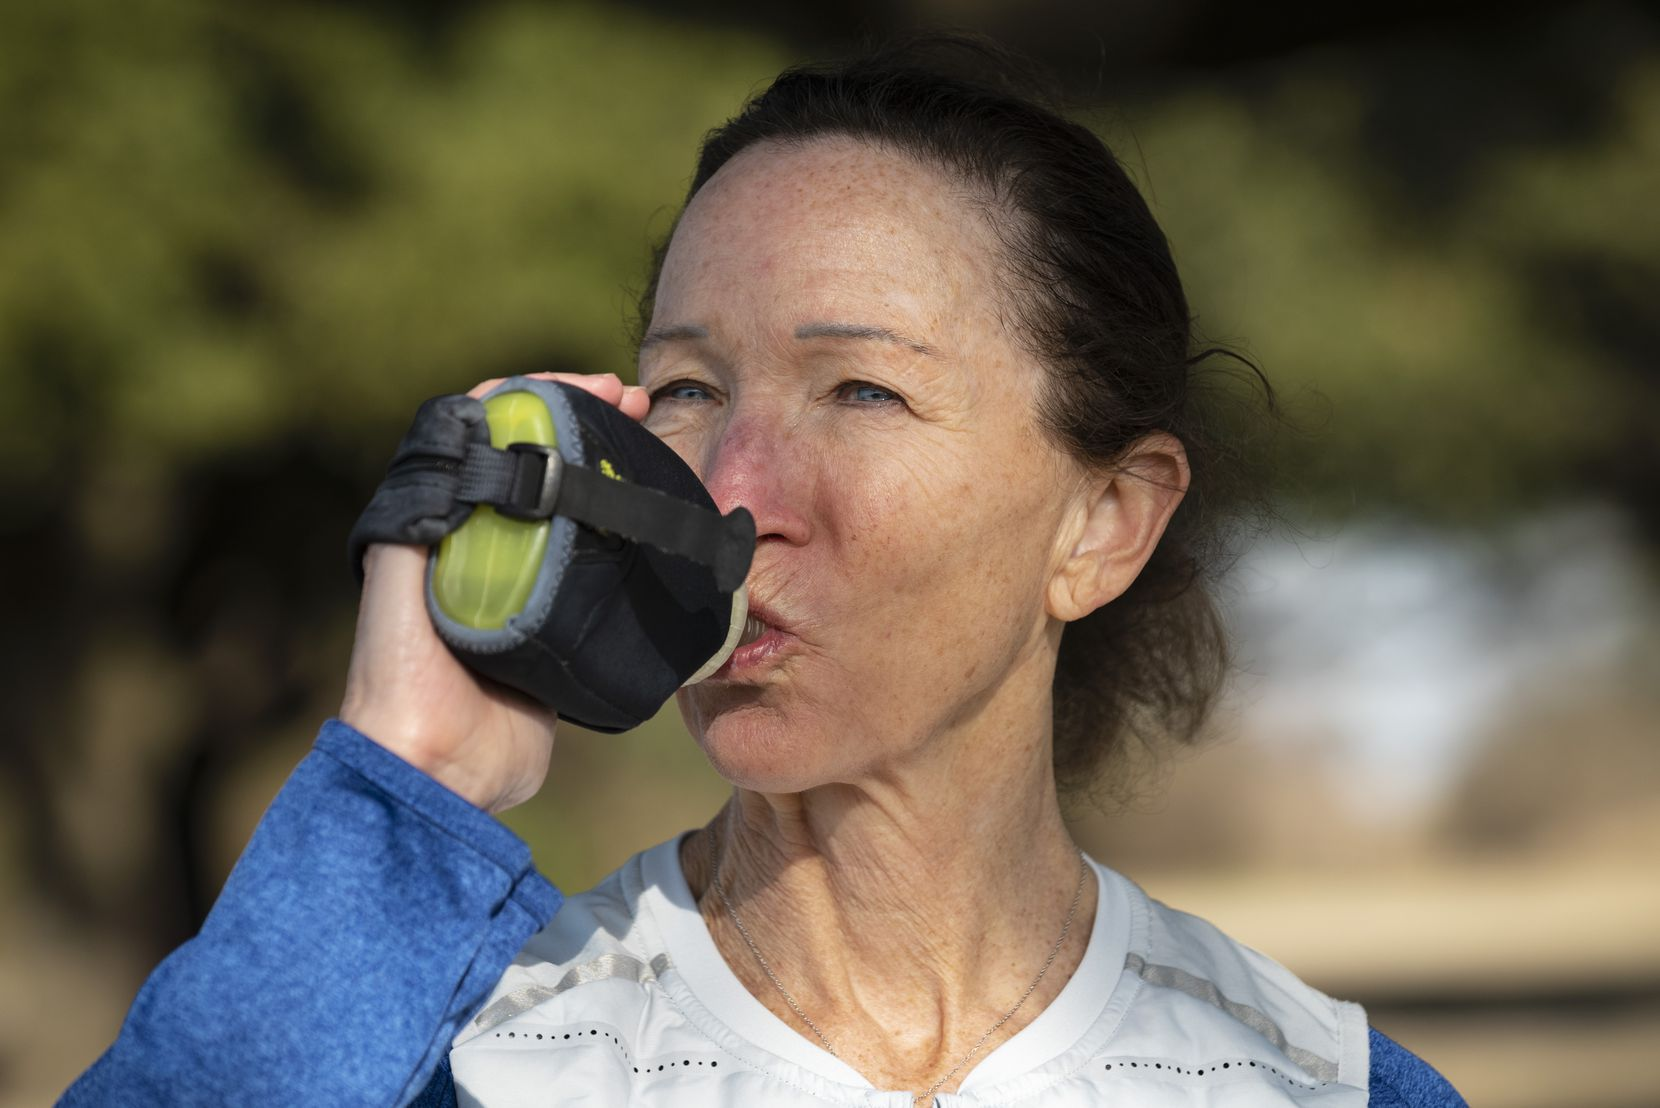 Maggie Riba, 62, takes water with her on her daily runs. The running coach and personal trainer has noticed that it improves her energy levels.